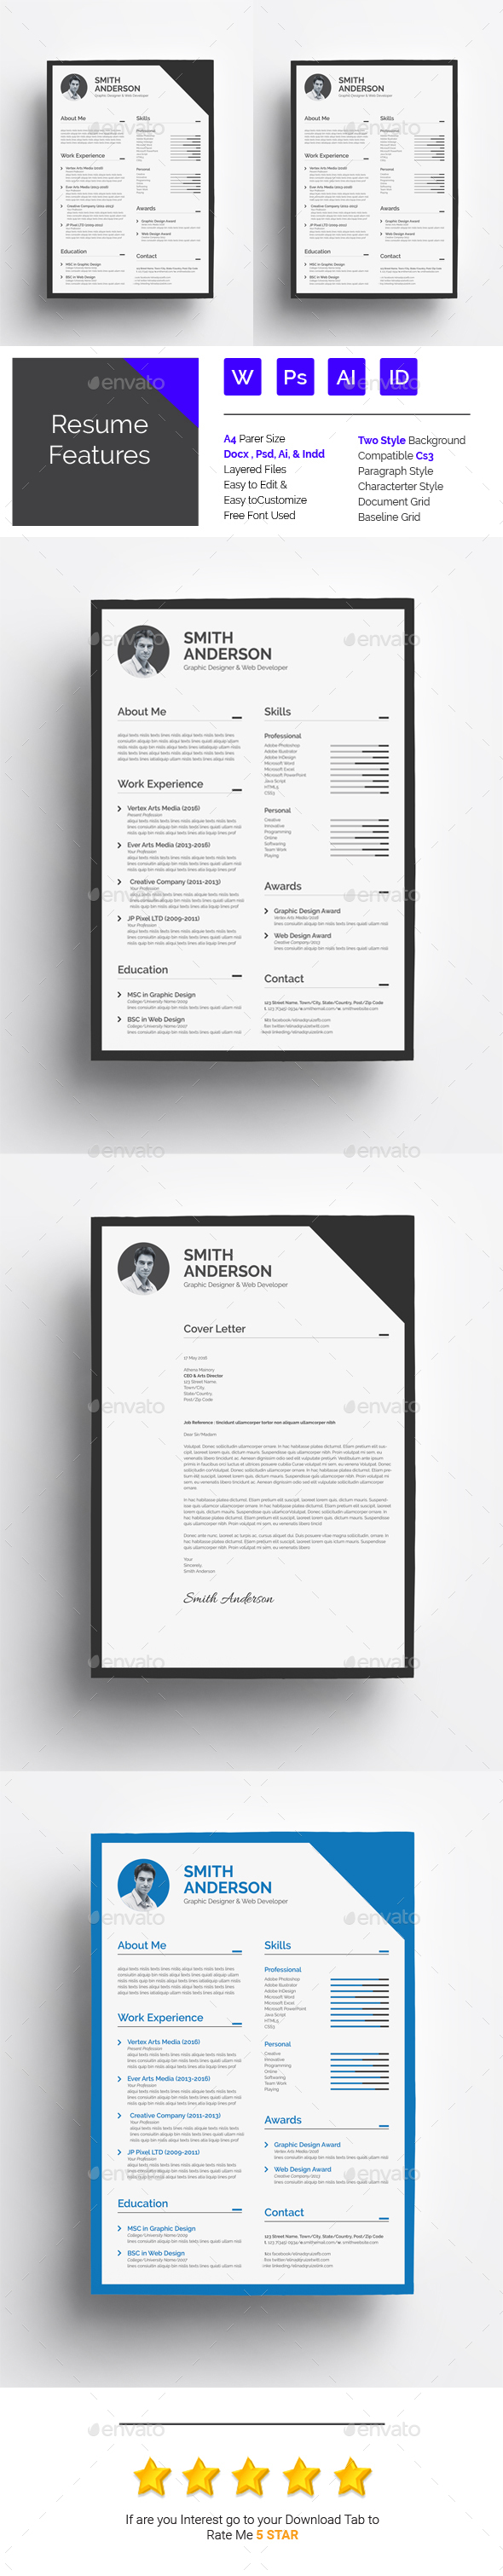 Resume Template Psd Vector Eps Indesign Indd Ms Word Download